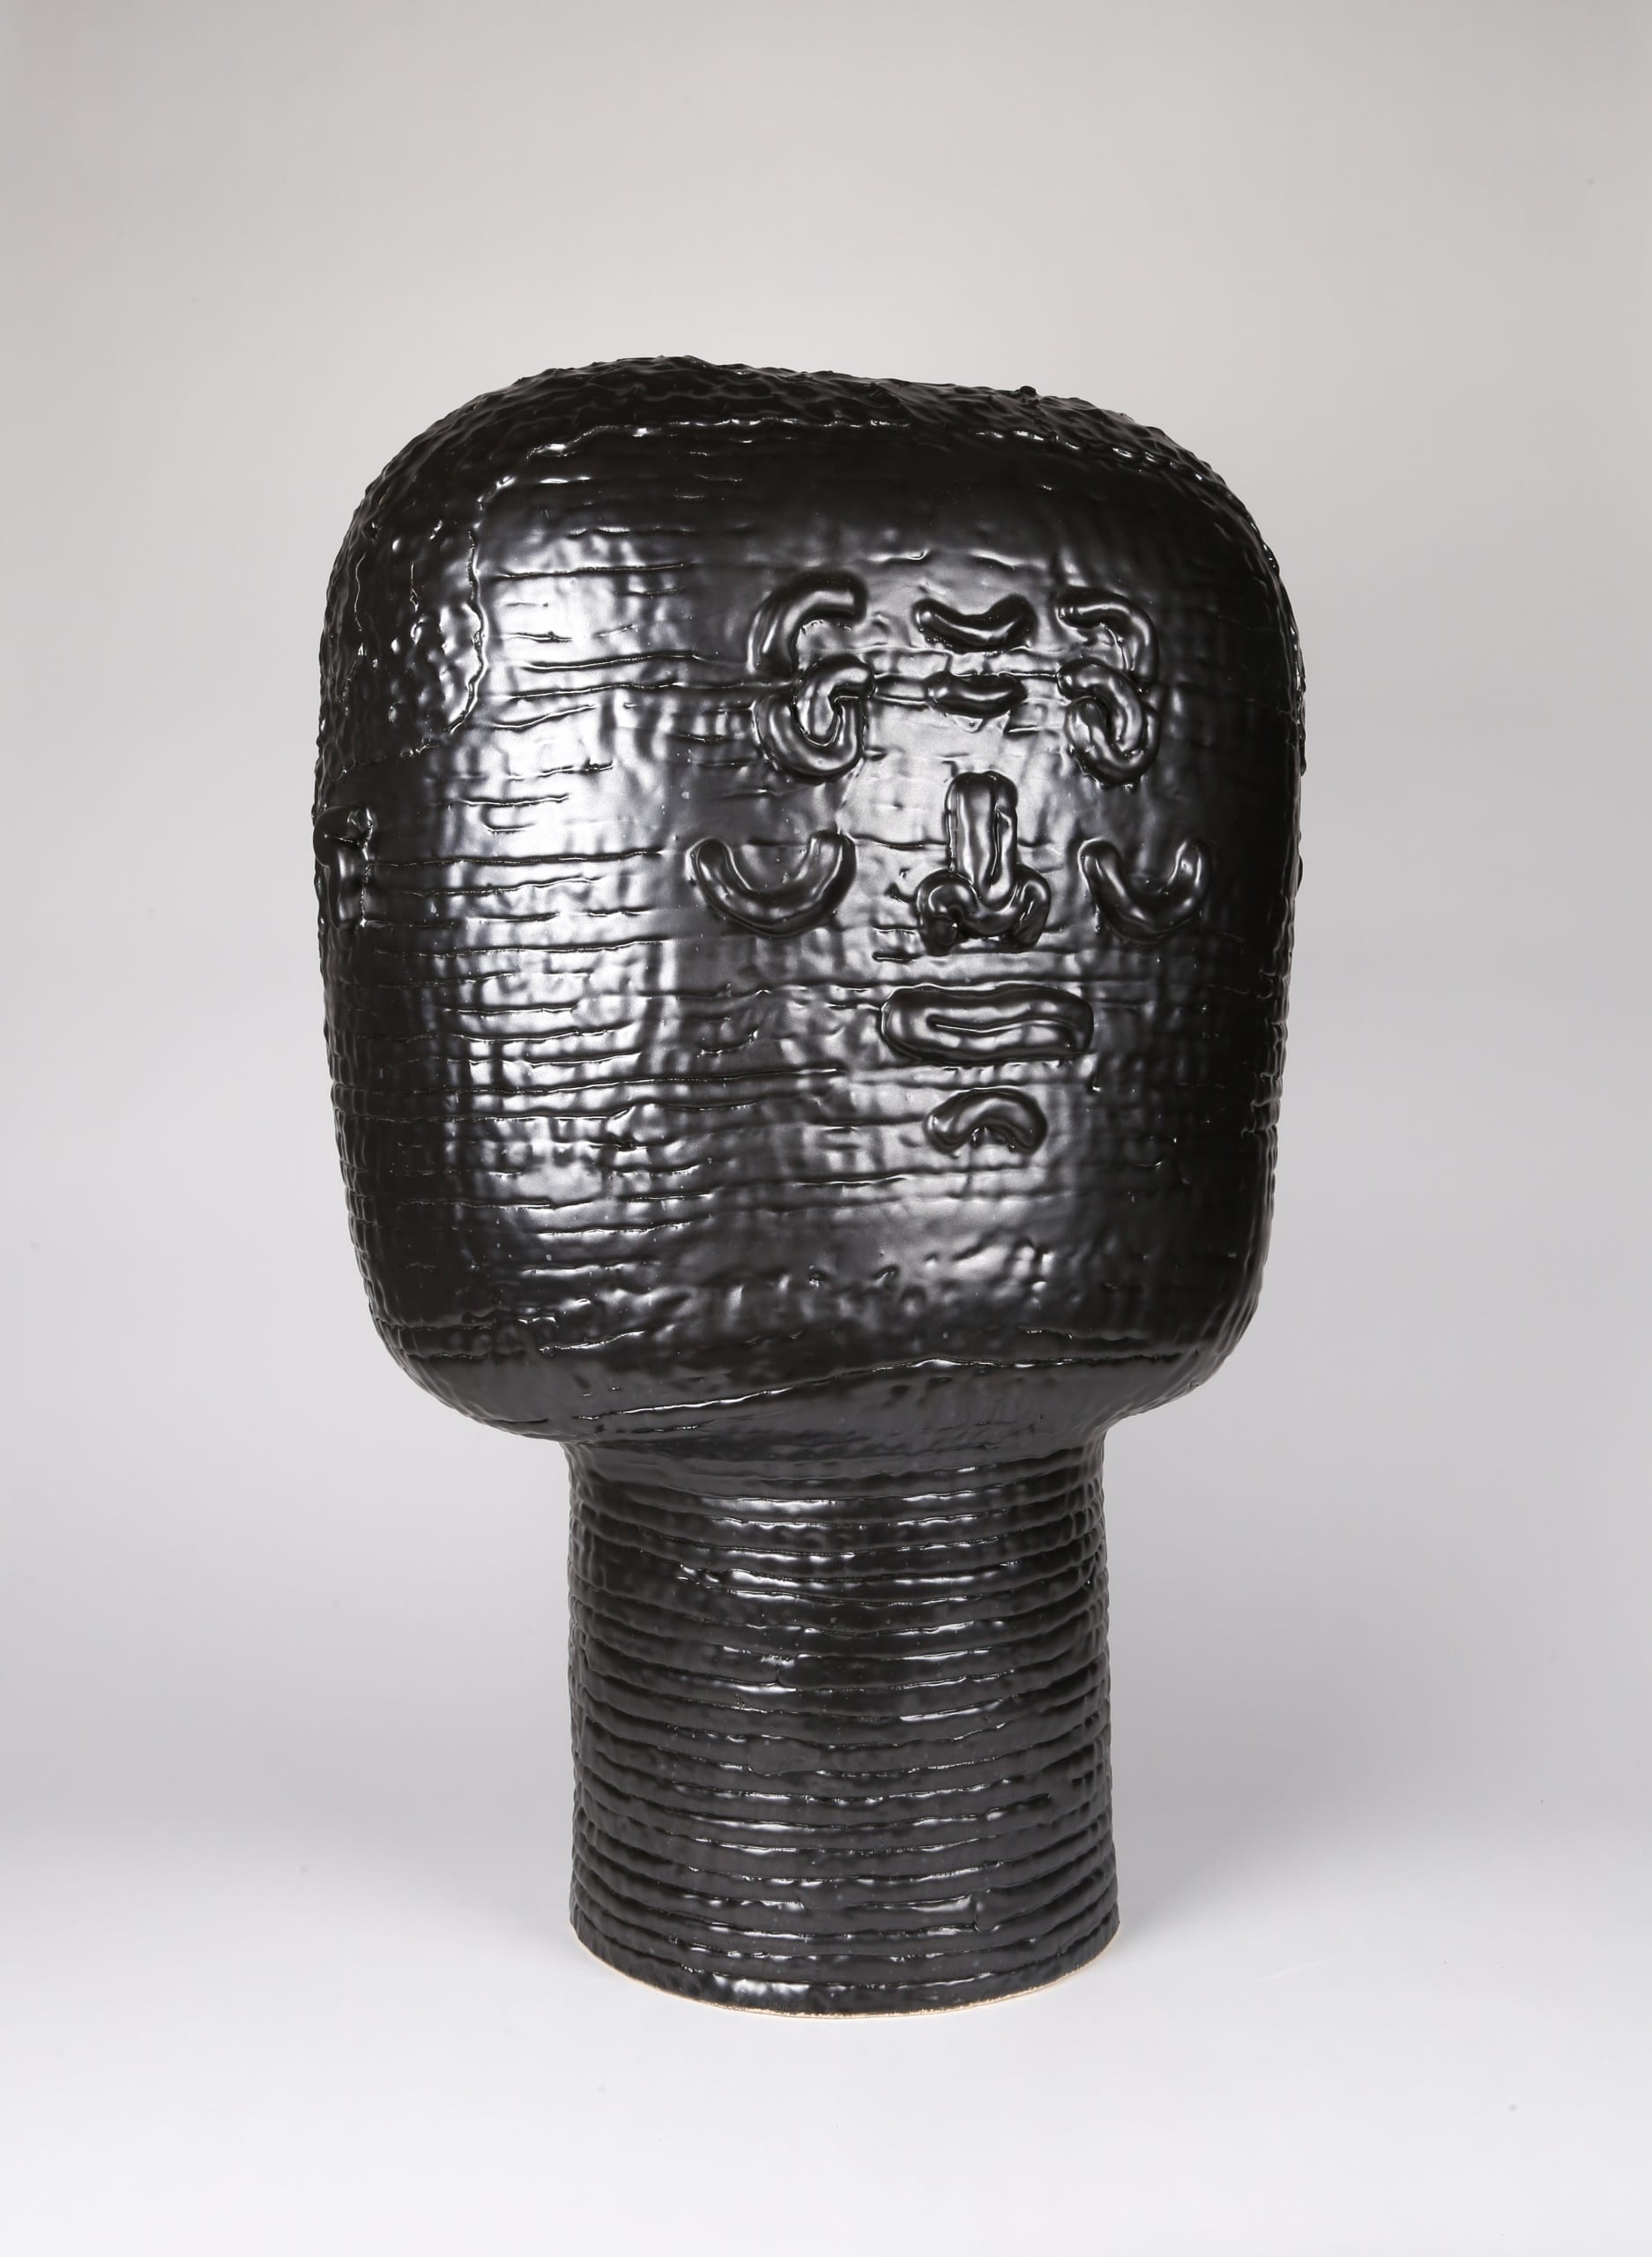 Color photograph with an oblique three-quarters view of an abstract ceramic portrait head that appears to be made from a long coil of clay. The head is sculpted to appear square or block-like. The outlines of two eyes, a nose, a mouth, and two ears are affixed to its surface, and the figure seems to be expressing a shy grin. The rear of the portrait details the texture of the figure's short cropped hair. The object is monochromatic (black), with a slight sheen to the glaze.